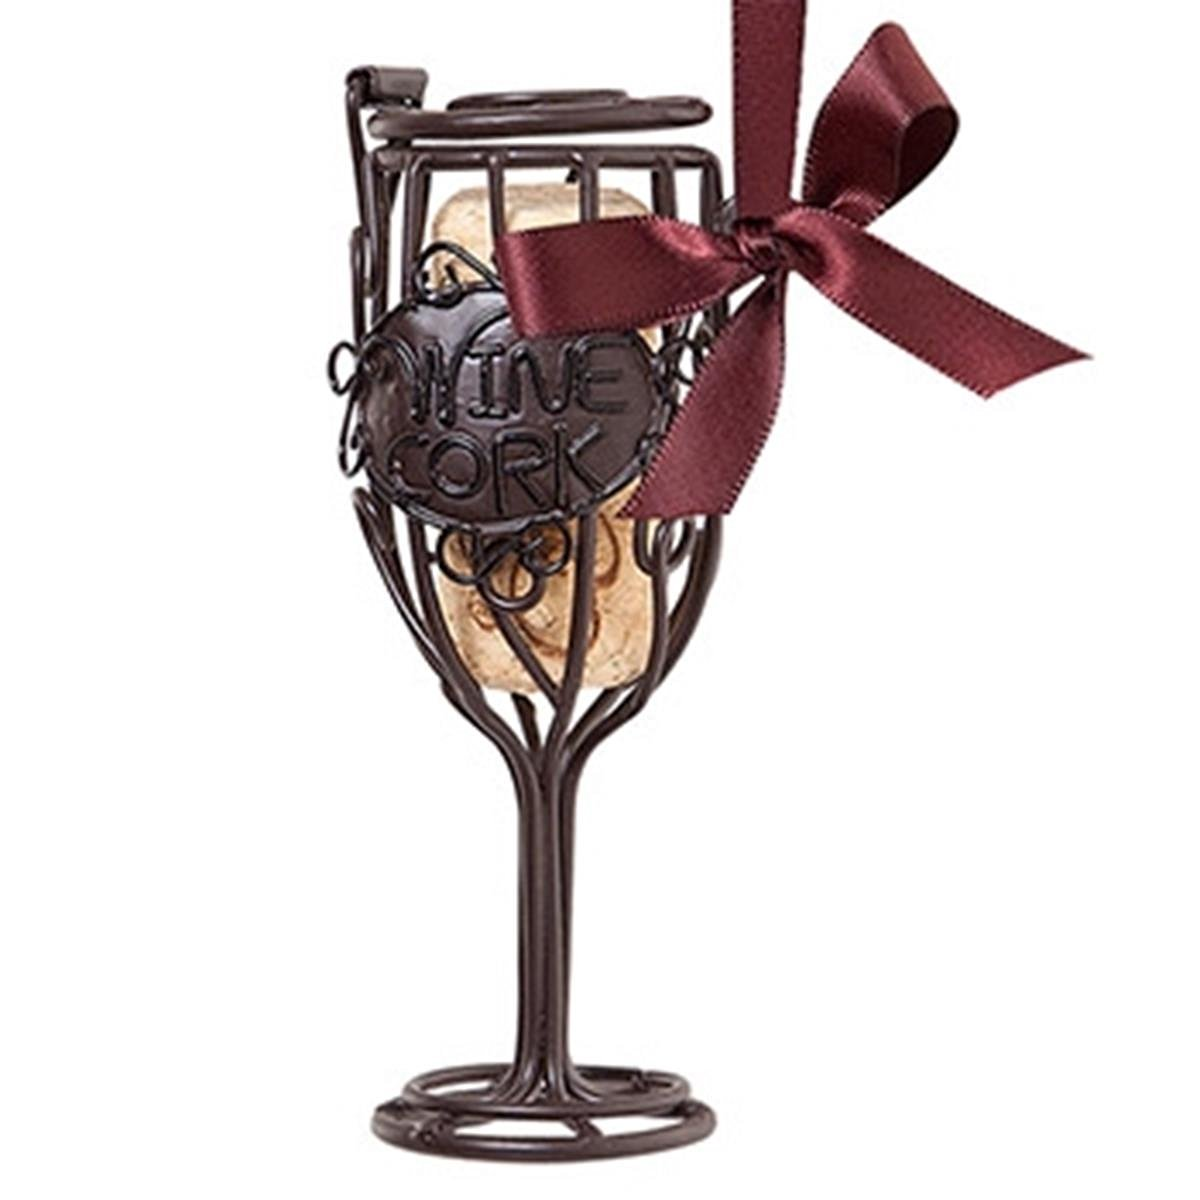 Epic 02-142 Stylish Memorial Wine Glass Cork Cage Bottle Ornament with Satin Bow